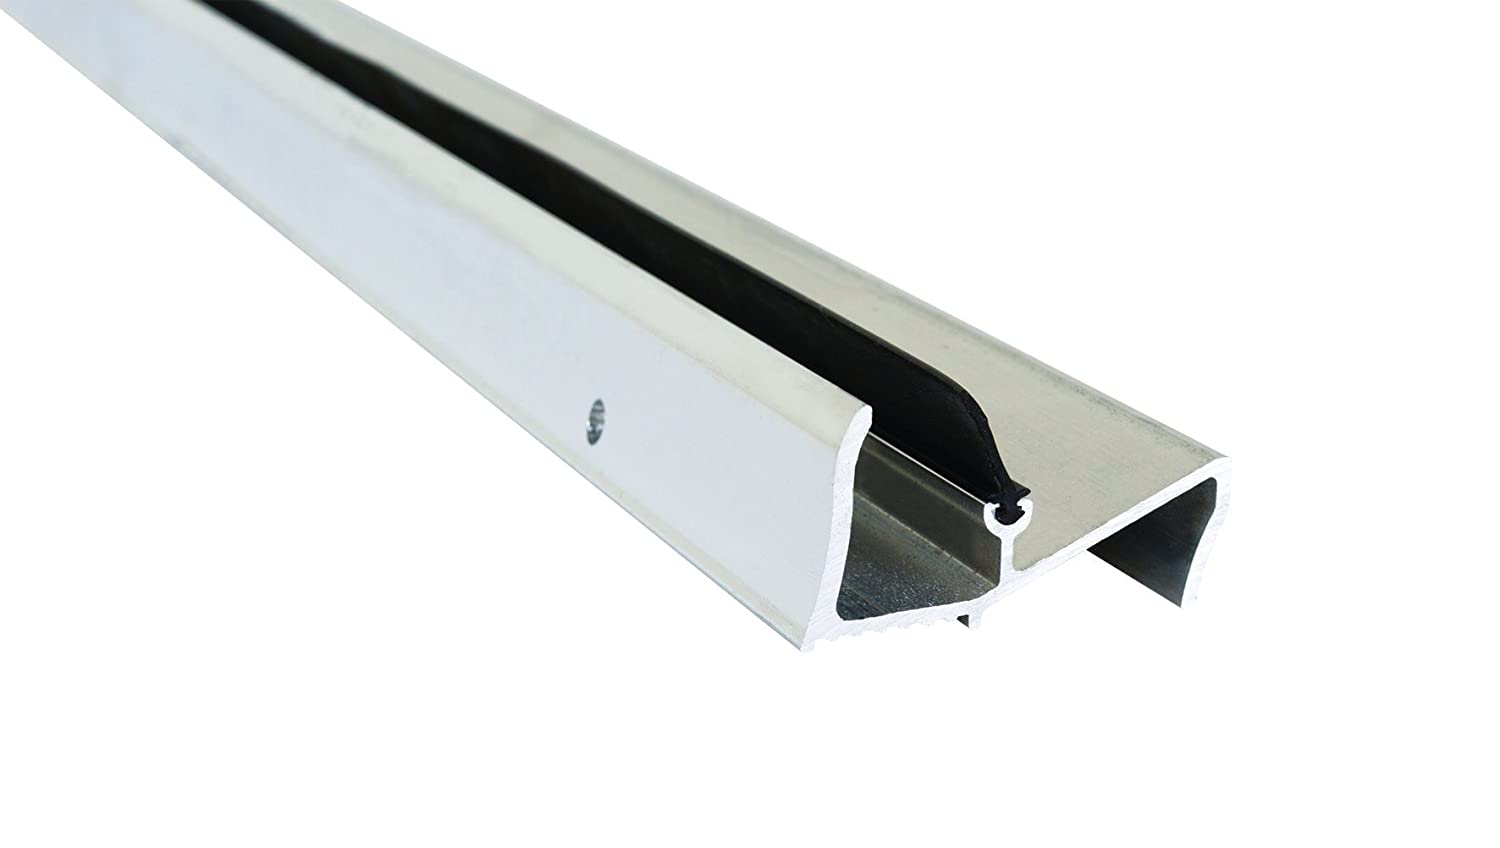 Stormguard 12SR0120838A 838mm Lowline Threshold Sill Kit including Rain Deflector - Aluminum